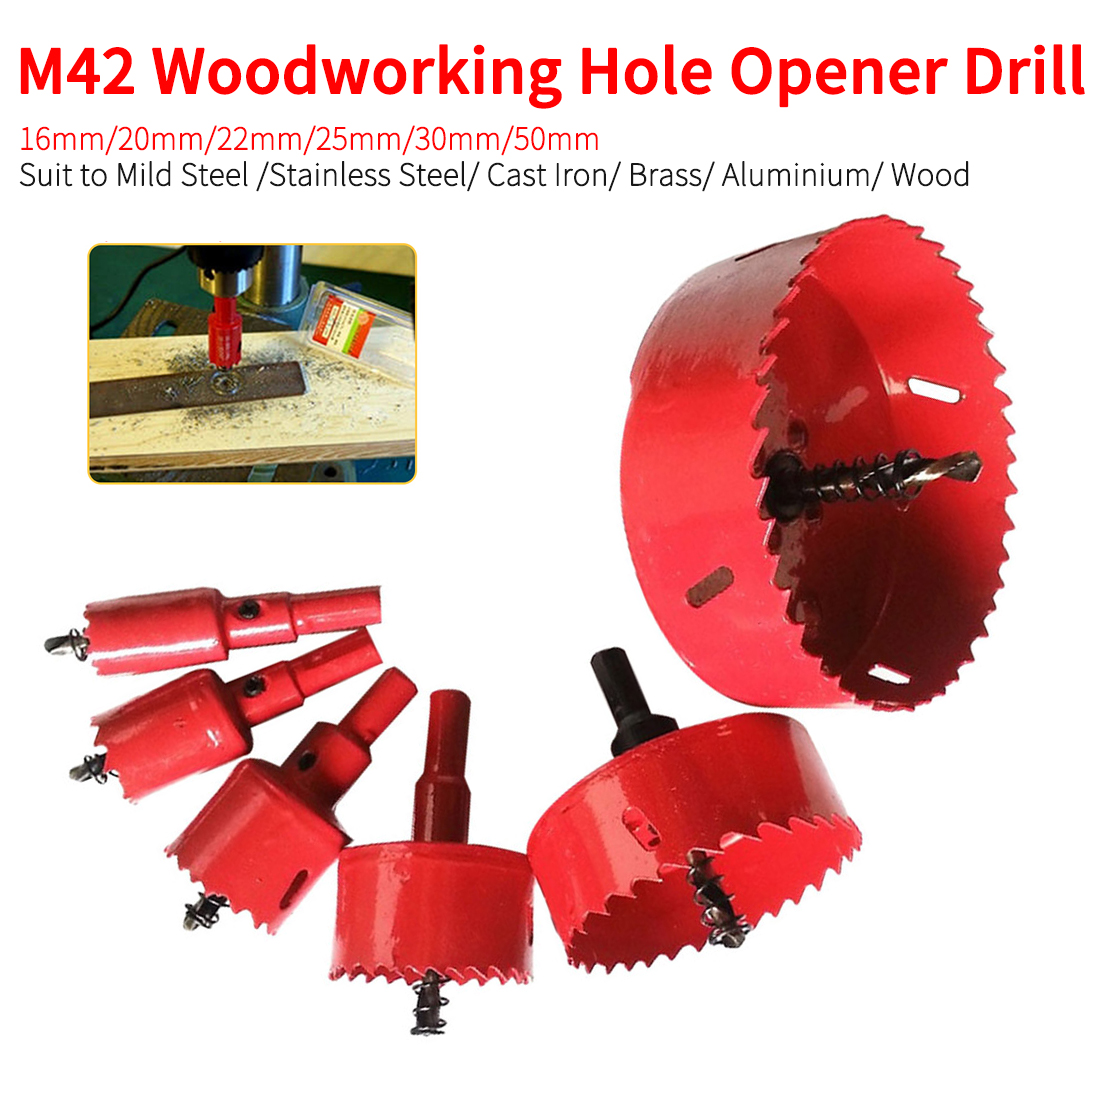 M42 Metal Wood Hole Saws Opener Drill Bit For Woodworking DIY Wood Cutter Drill Bit 16mm/20mm/22mm/25mm/30mm/50mm